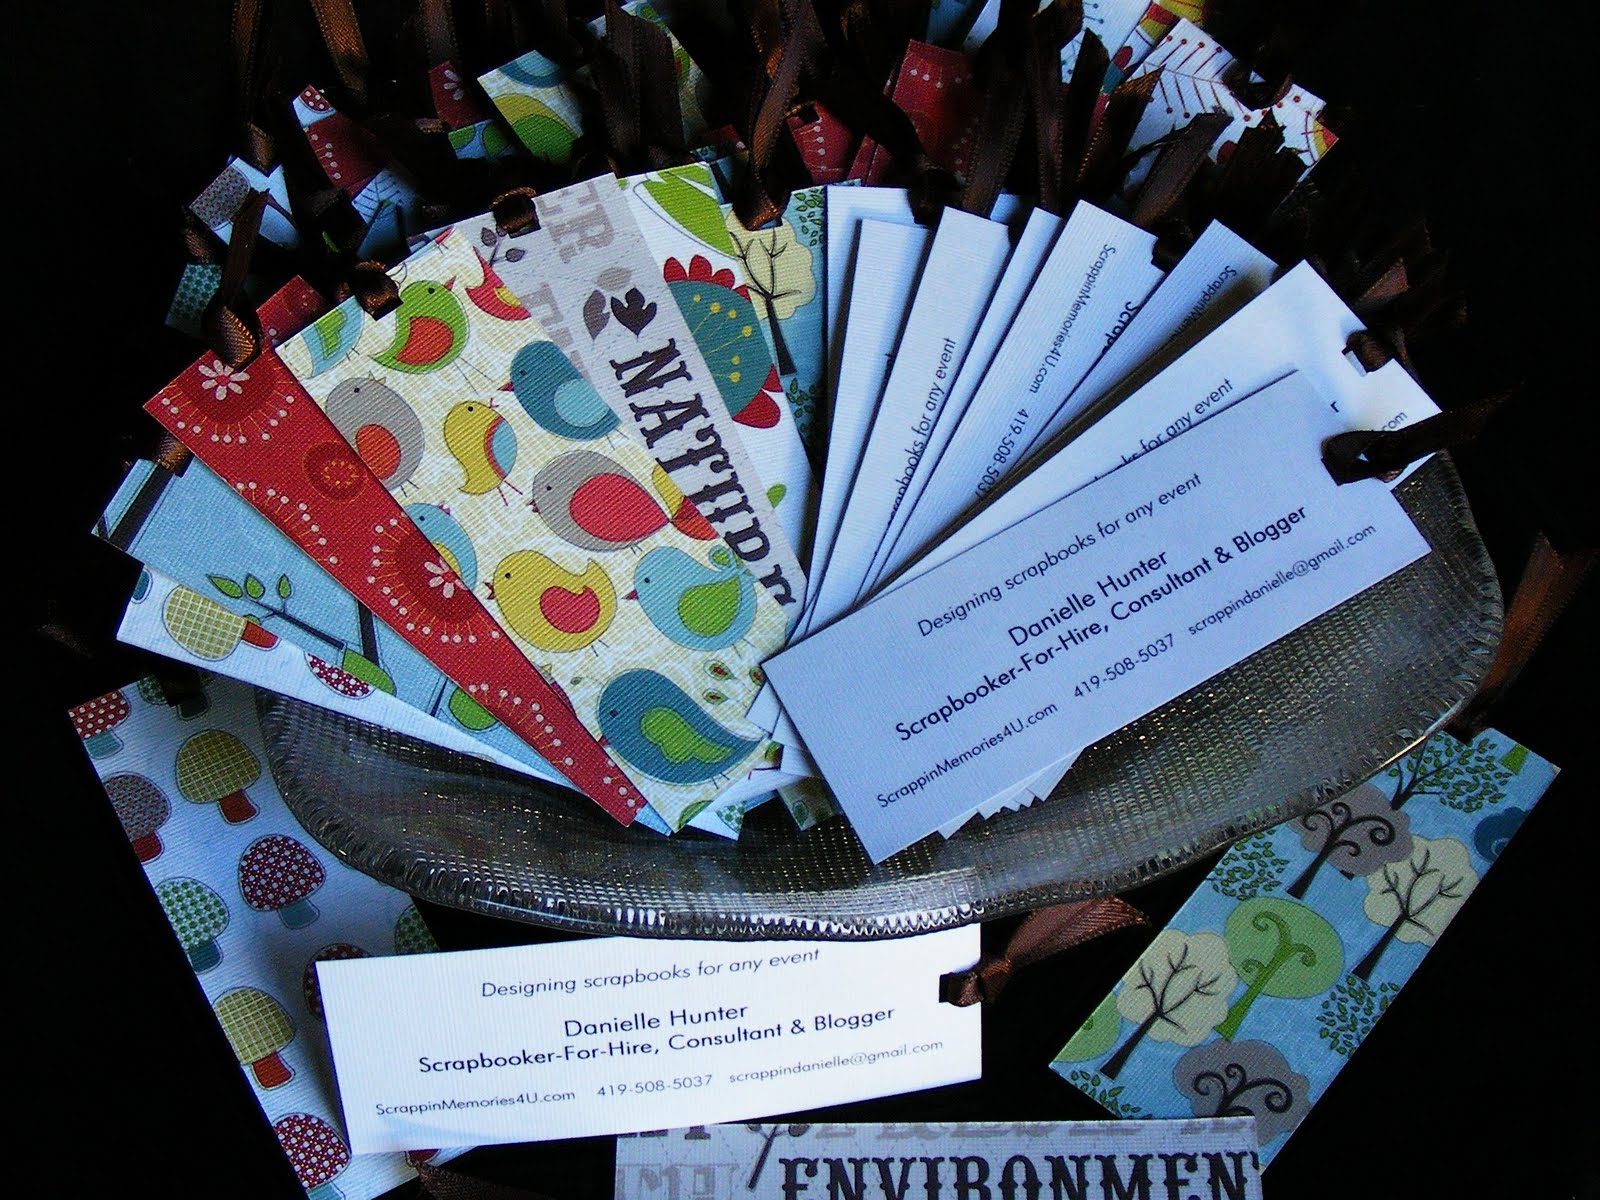 Scrapbook ideas recycled - How To Make Business Card Bookmarks Using Recycled Scrapbook Paper